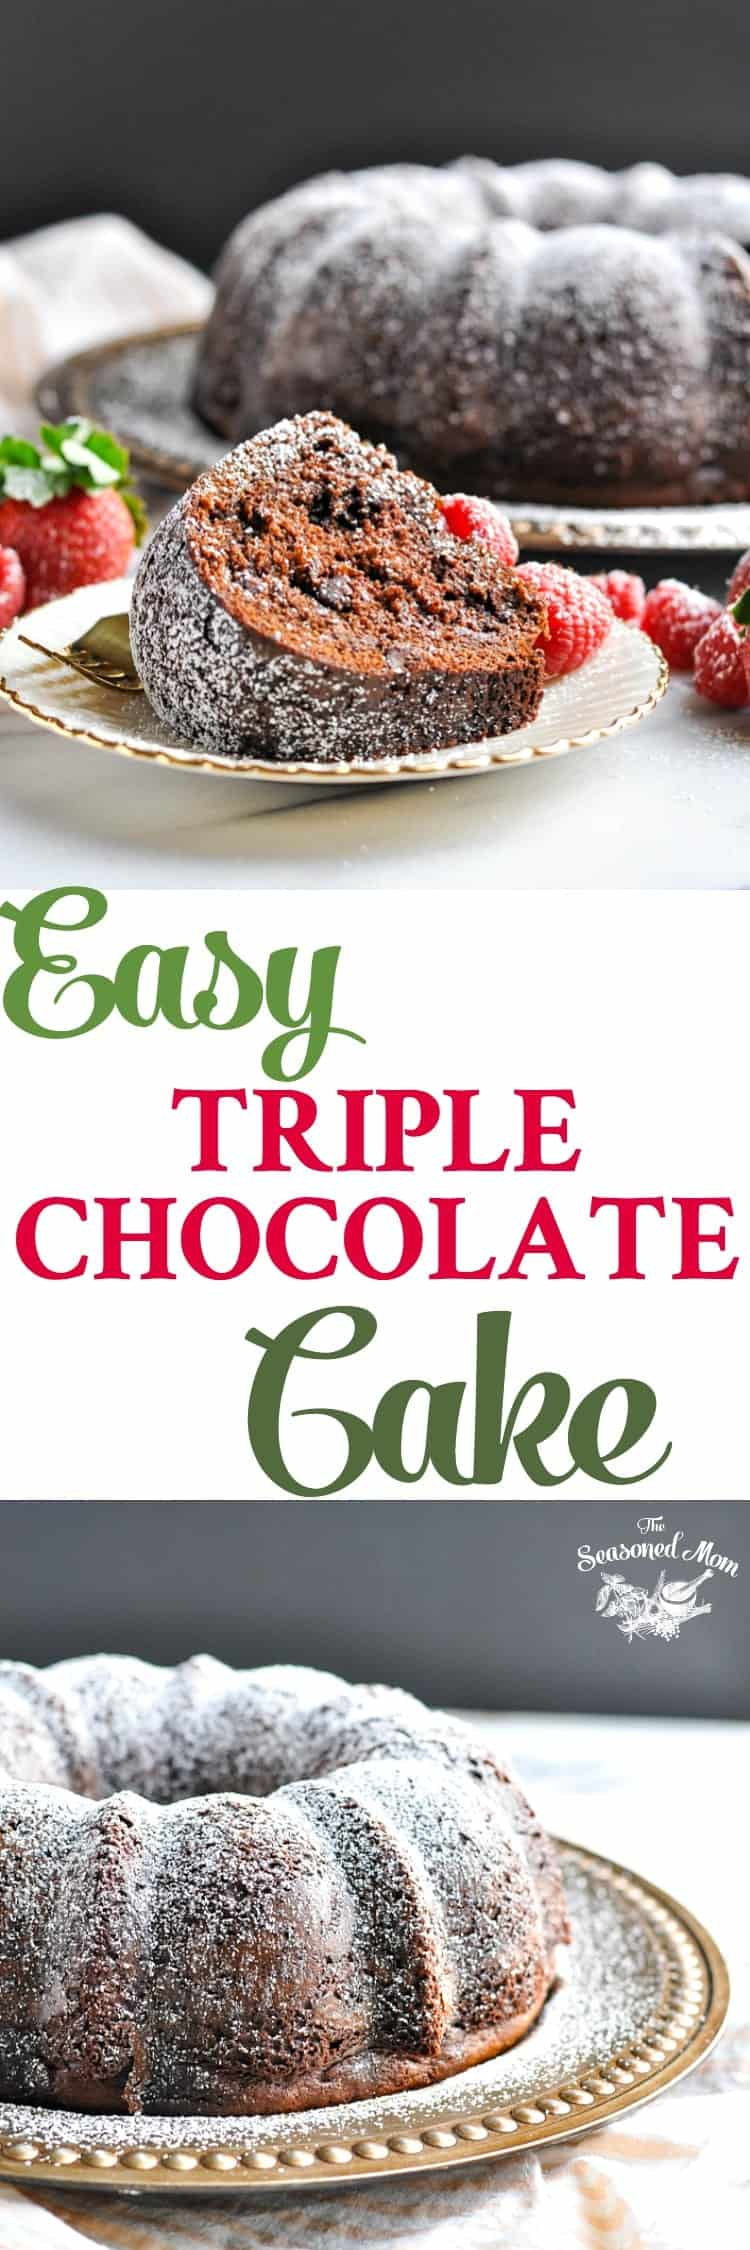 With a little bit of help from a boxed mix (plus a few secret ingredients), Claudia's Easy Triple Chocolate Cake is ready for the oven in about 10 minutes! Cake Mix Recipes | Bundt Cake Recipes | Easy Dessert Recipes | Chocolate Dessert #chocolate #cake #cakemix #dessert #TheSeasonedMom